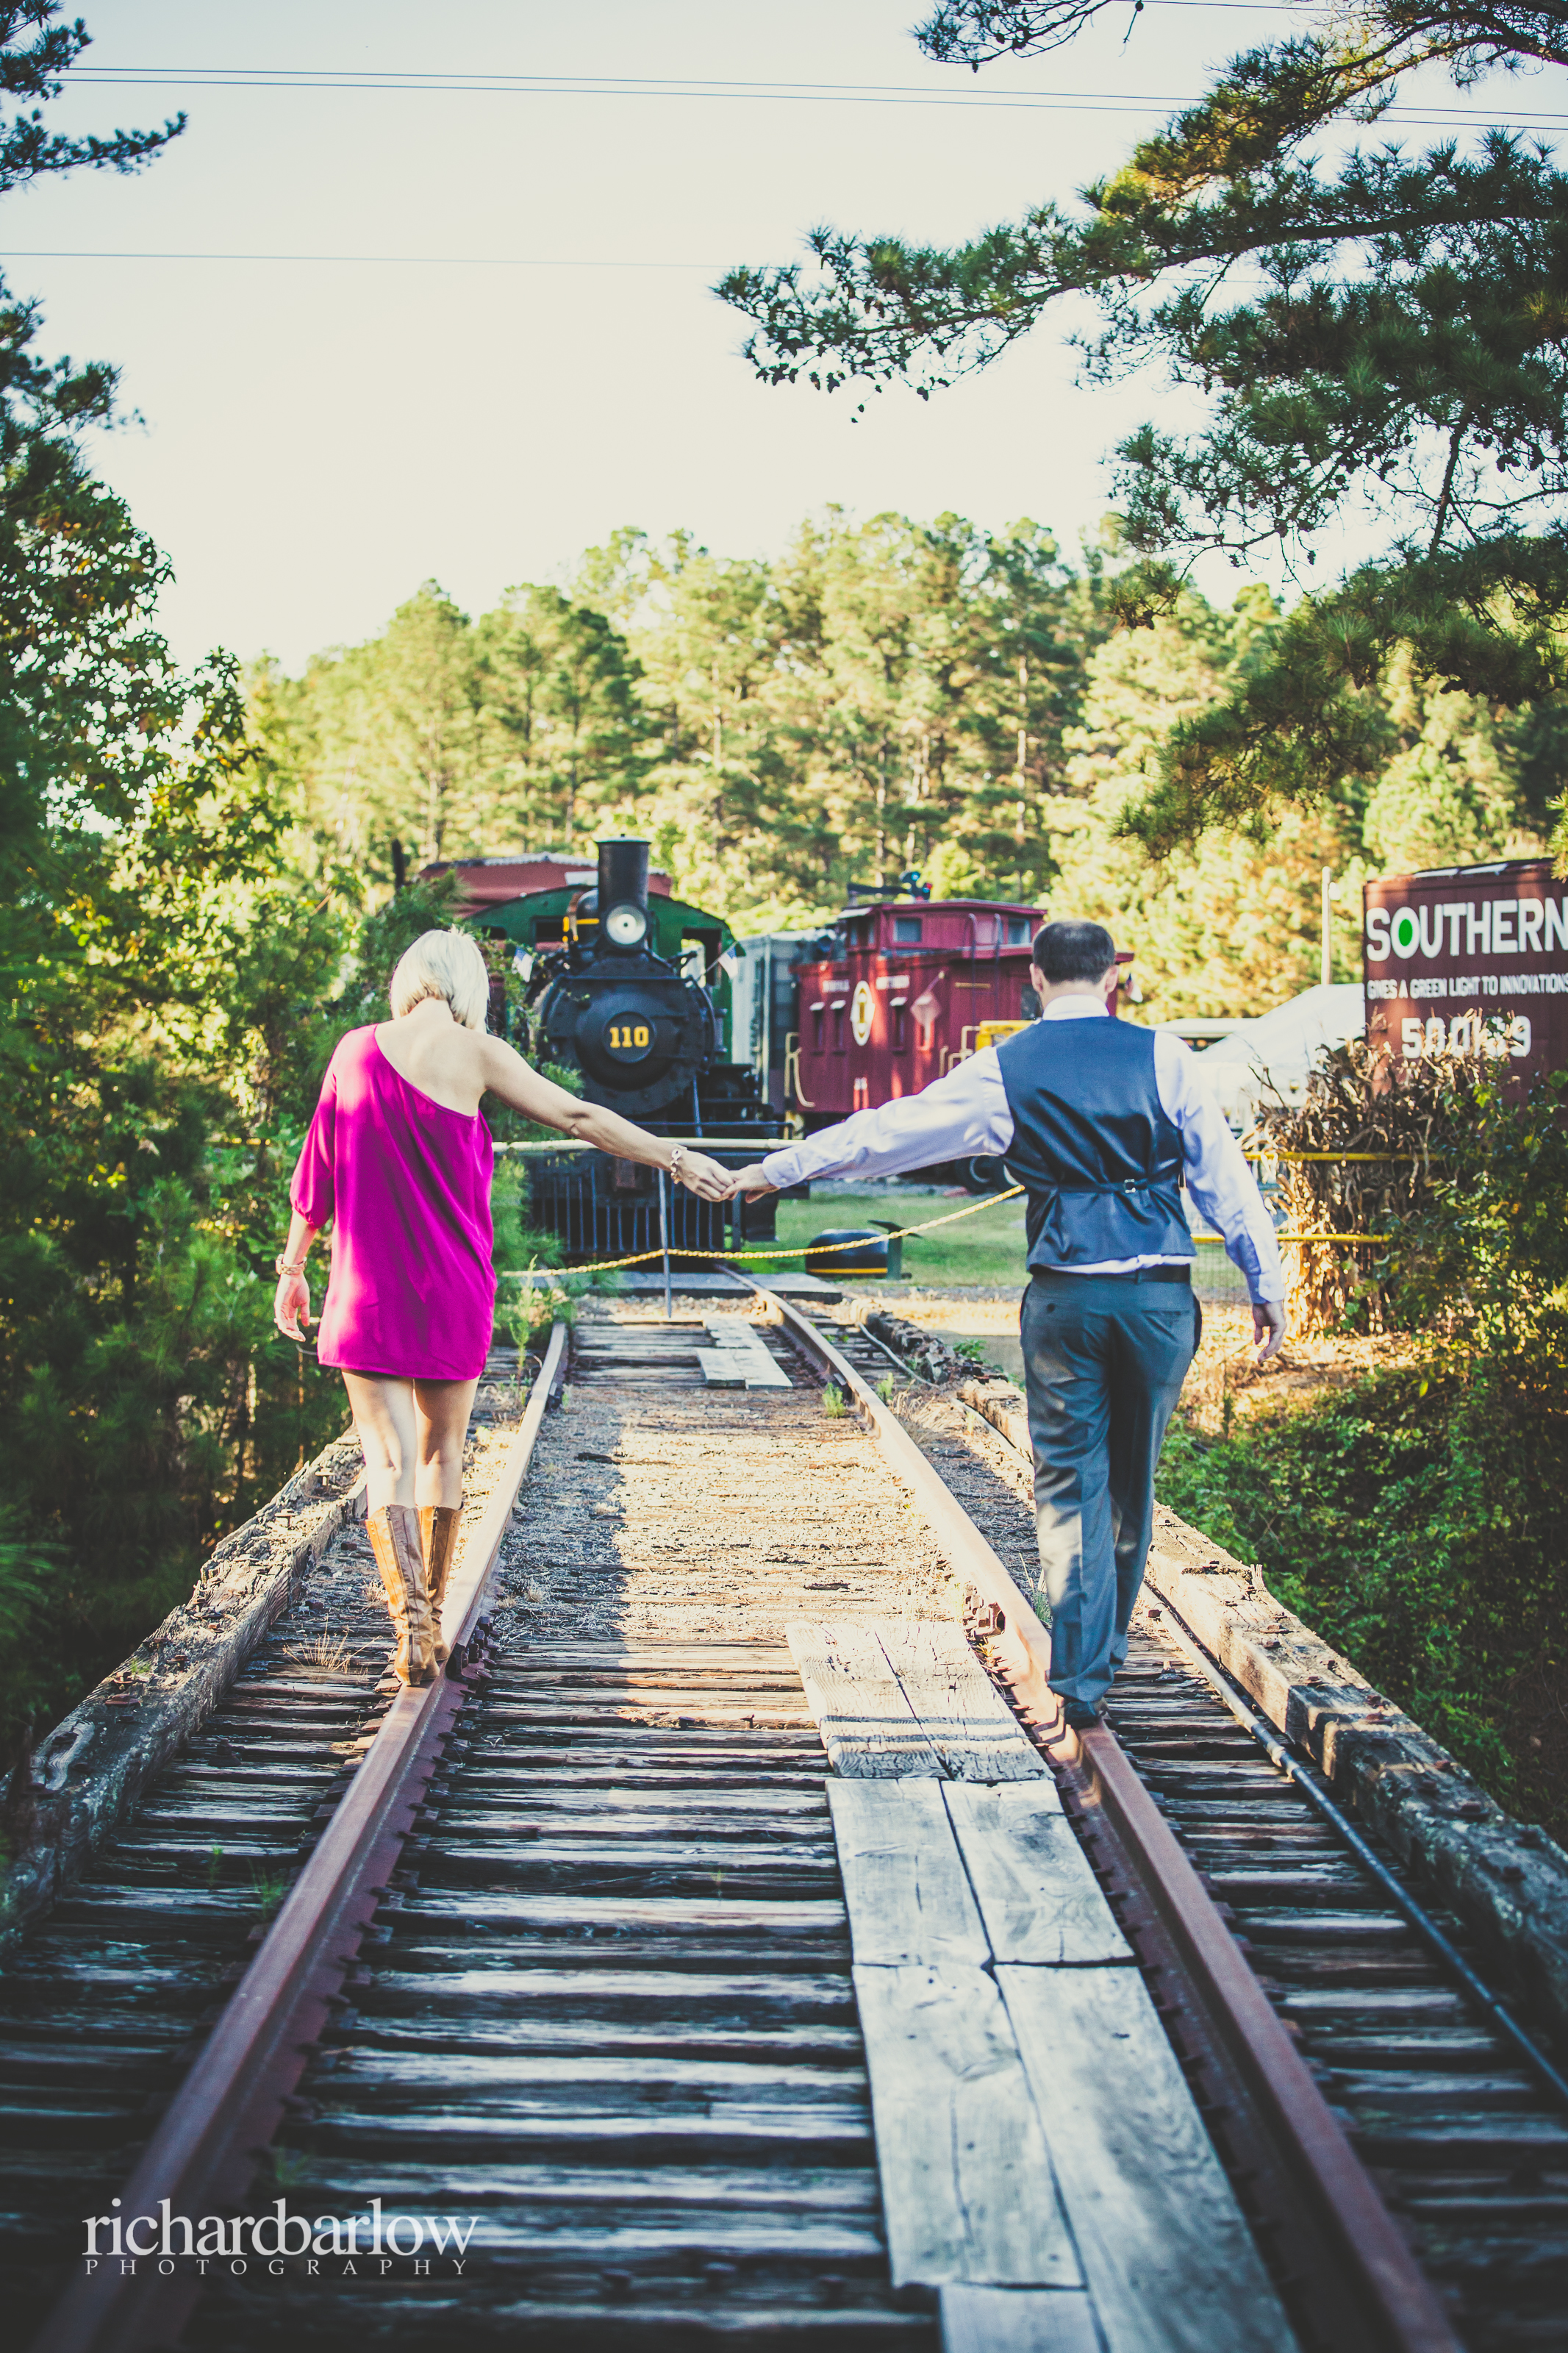 richard barlow photography - Mike and Renee Engagement Session NC-2.jpg